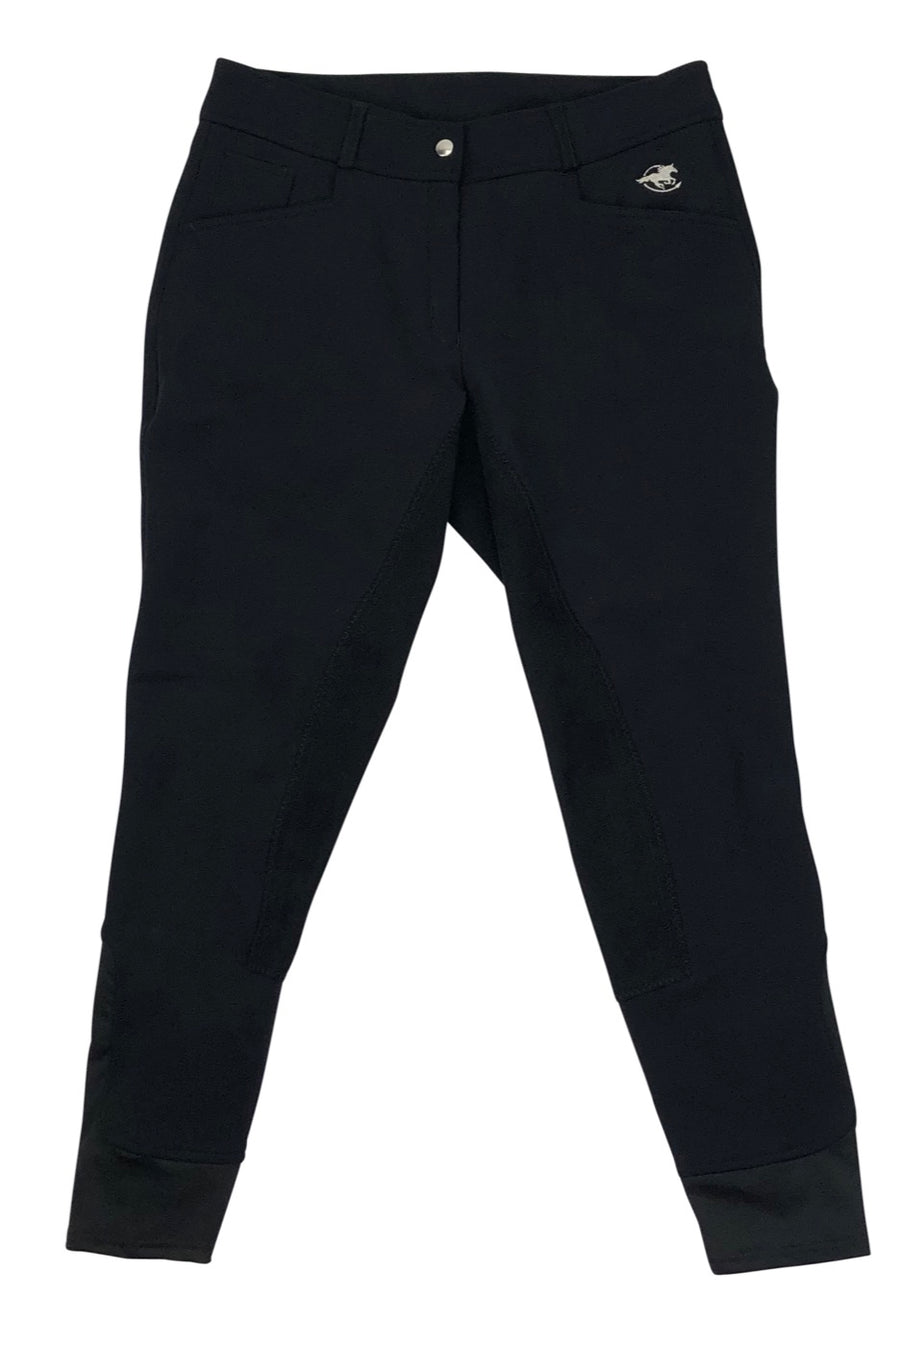 Front view of SmartPak Piper Softshell Full Seat Winter Breeches in Black